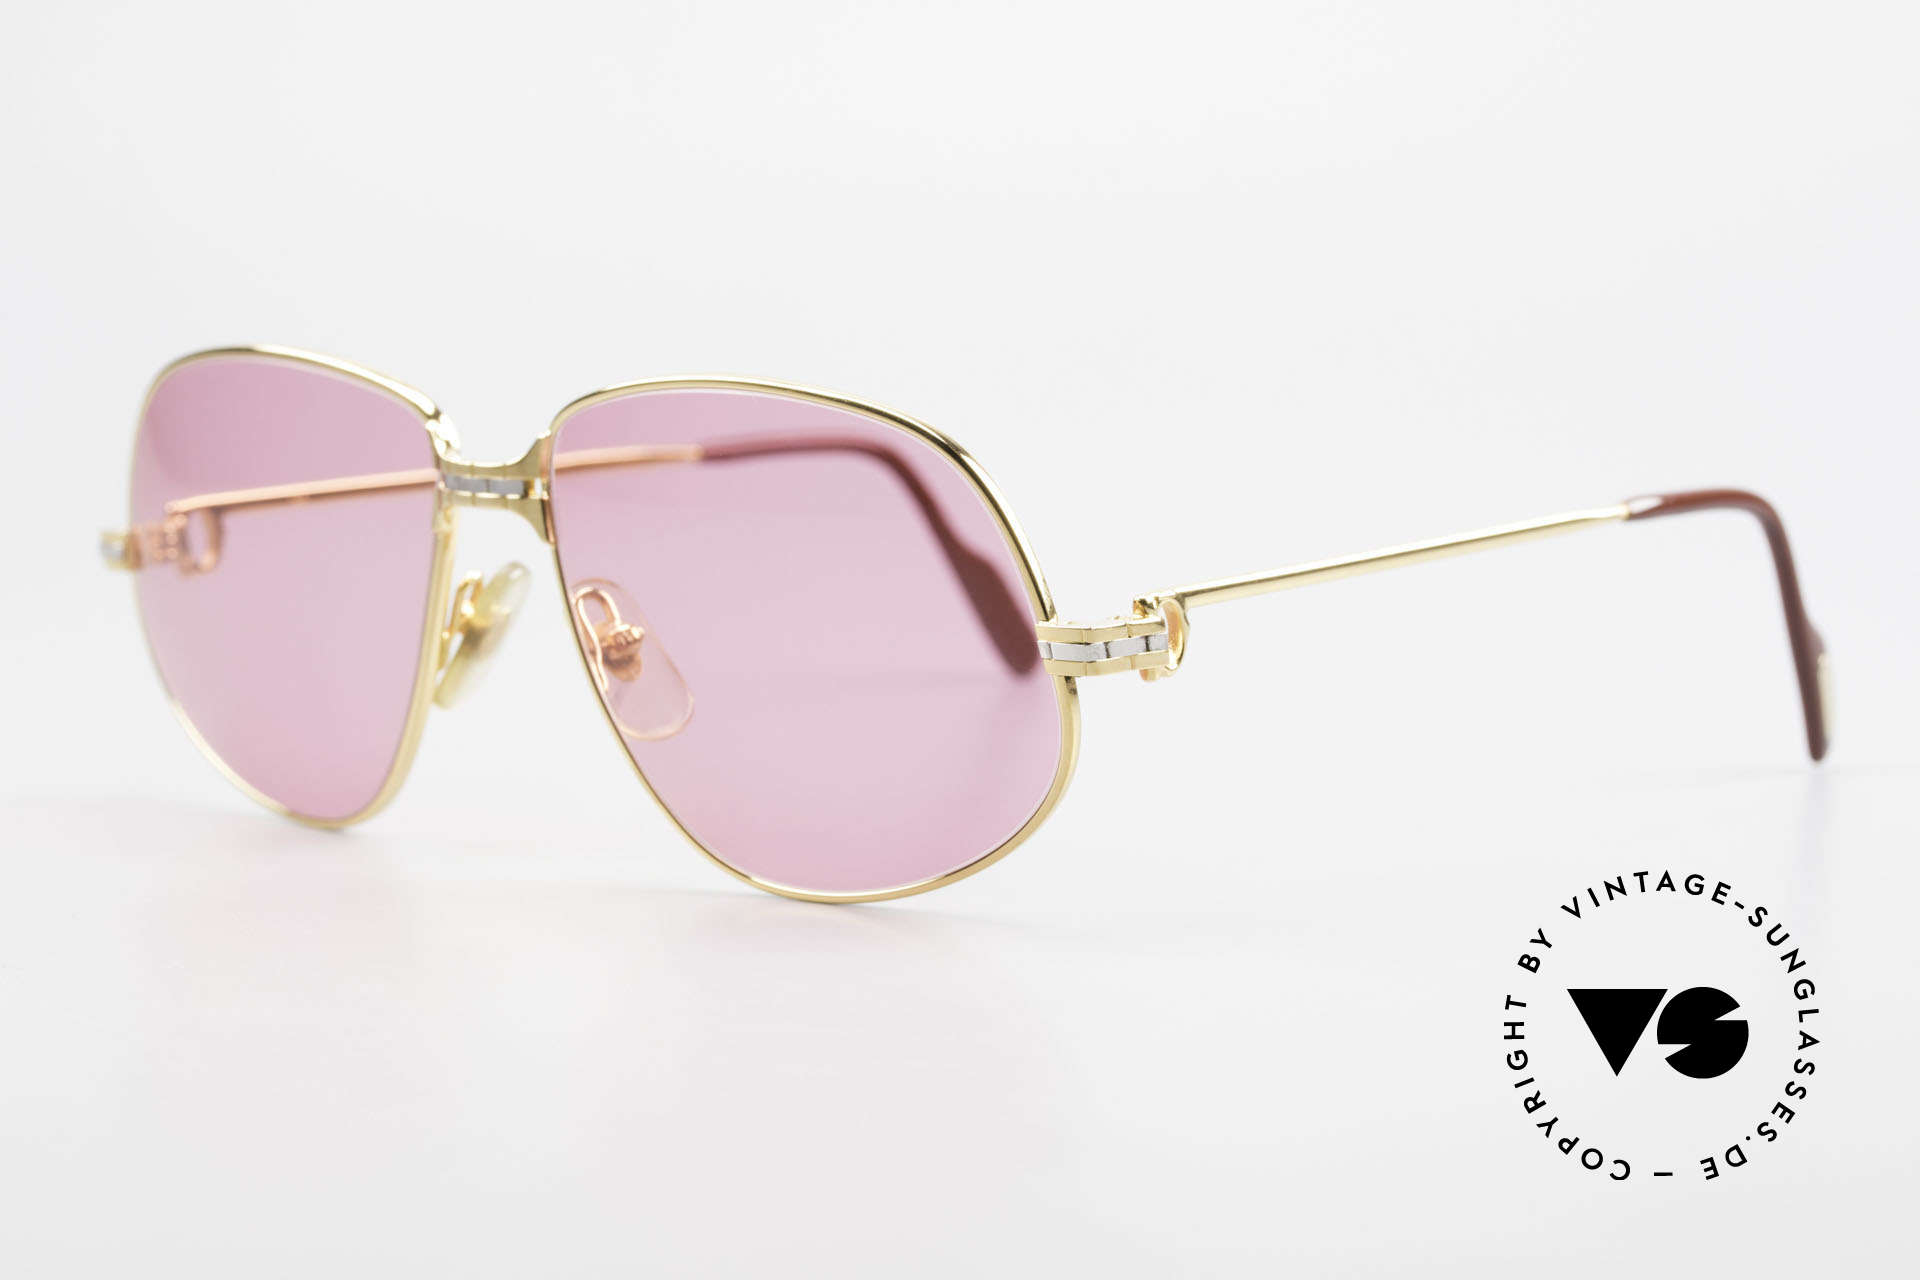 Cartier Panthere G.M. - M Pink Glasses With Chanel Case, precious luxury eyeglass-frame; MEDIUM size 56-14, 135, Made for Men and Women